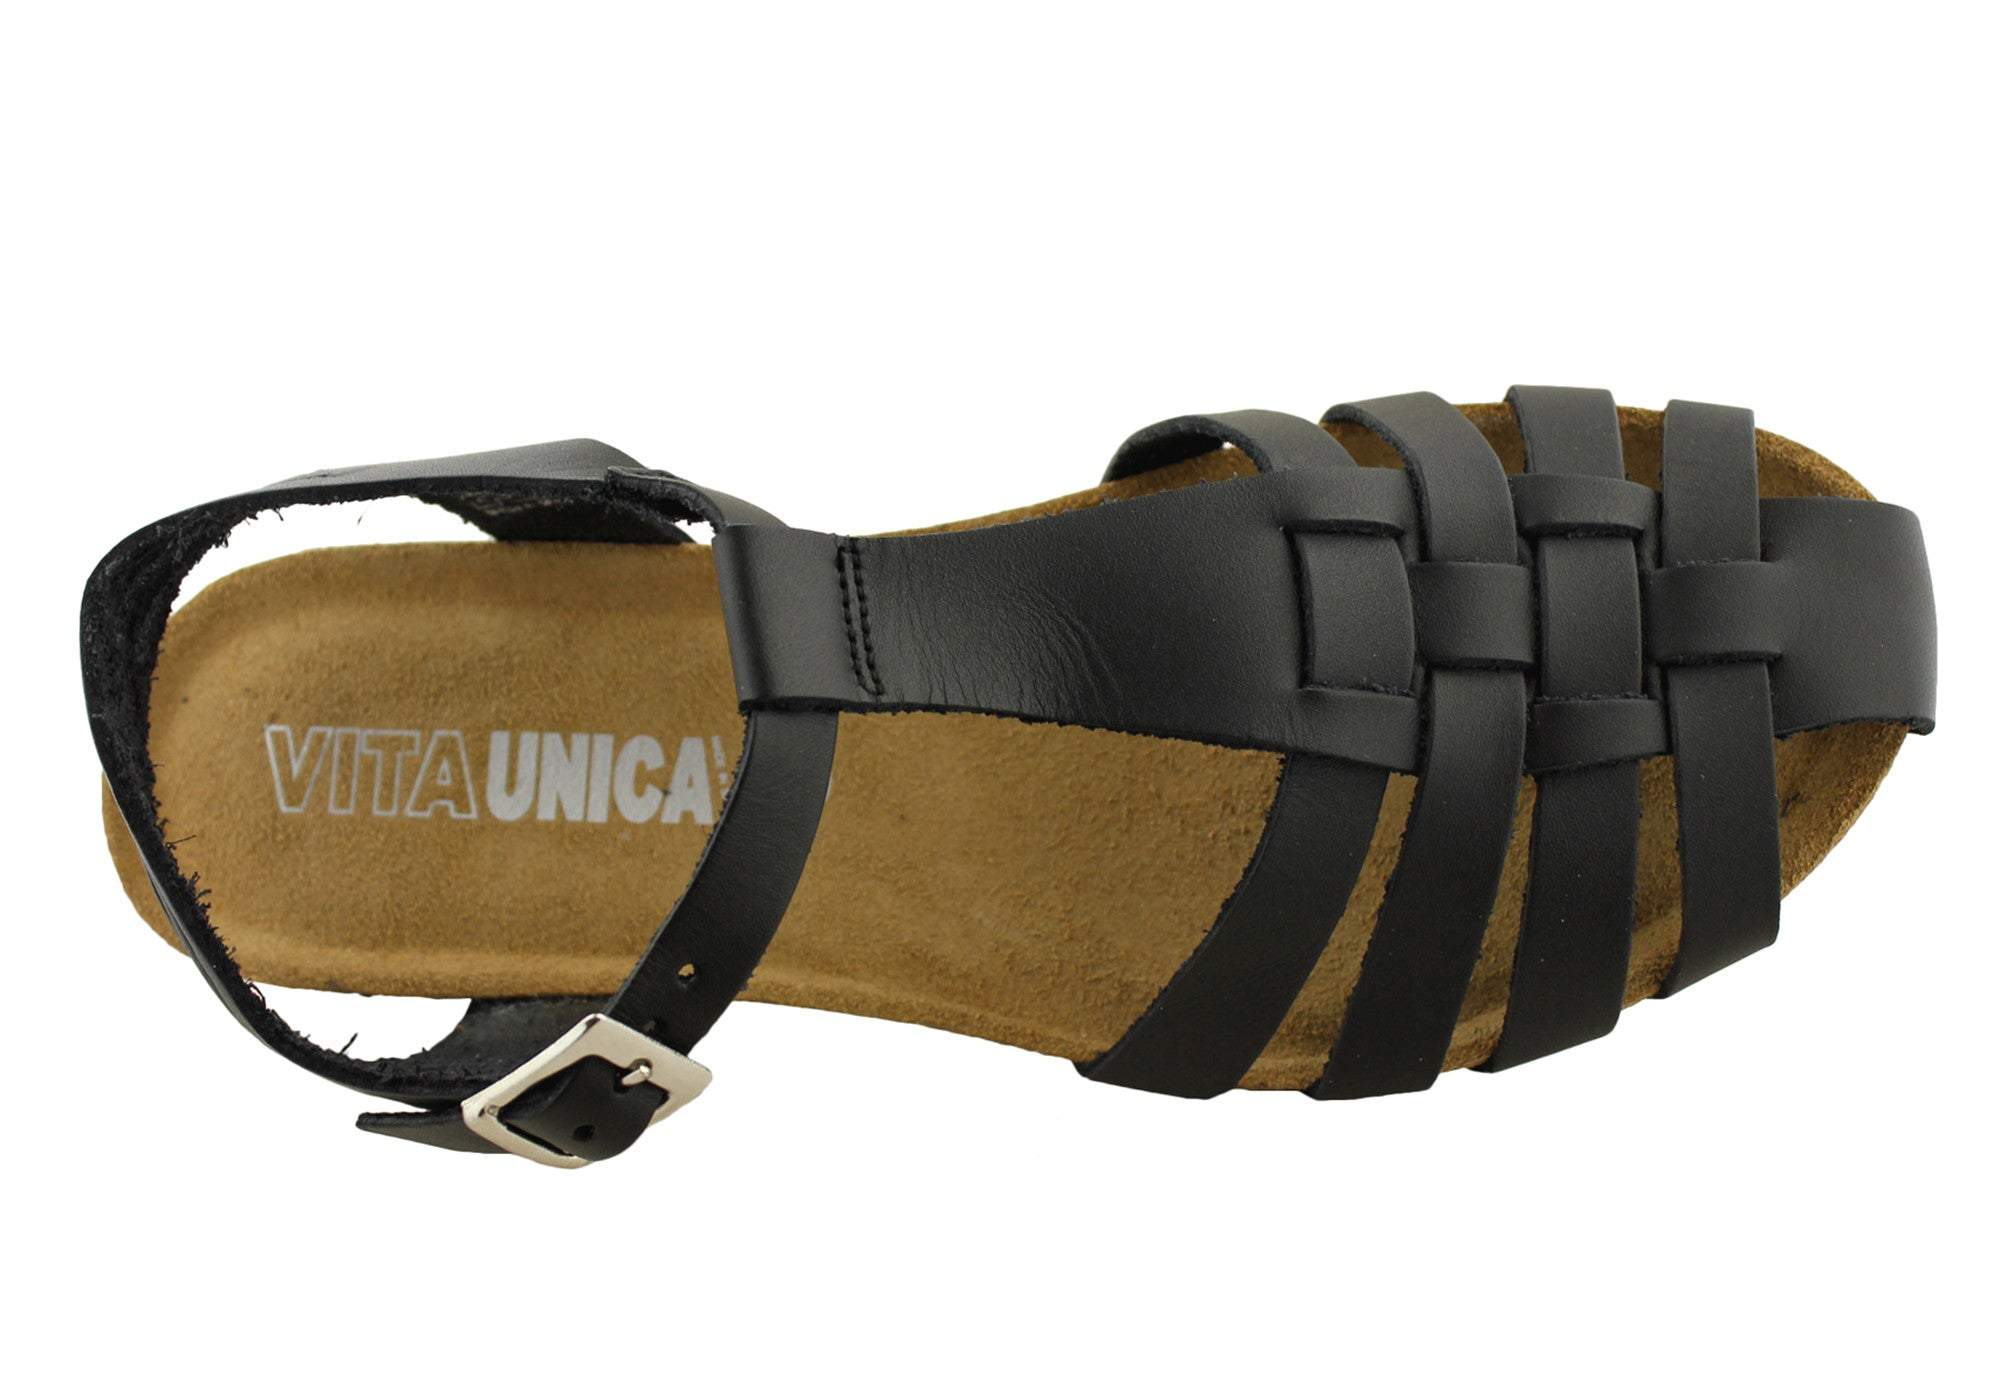 Vita Unica Womens Leather Fisherman Sandals Made In Spain